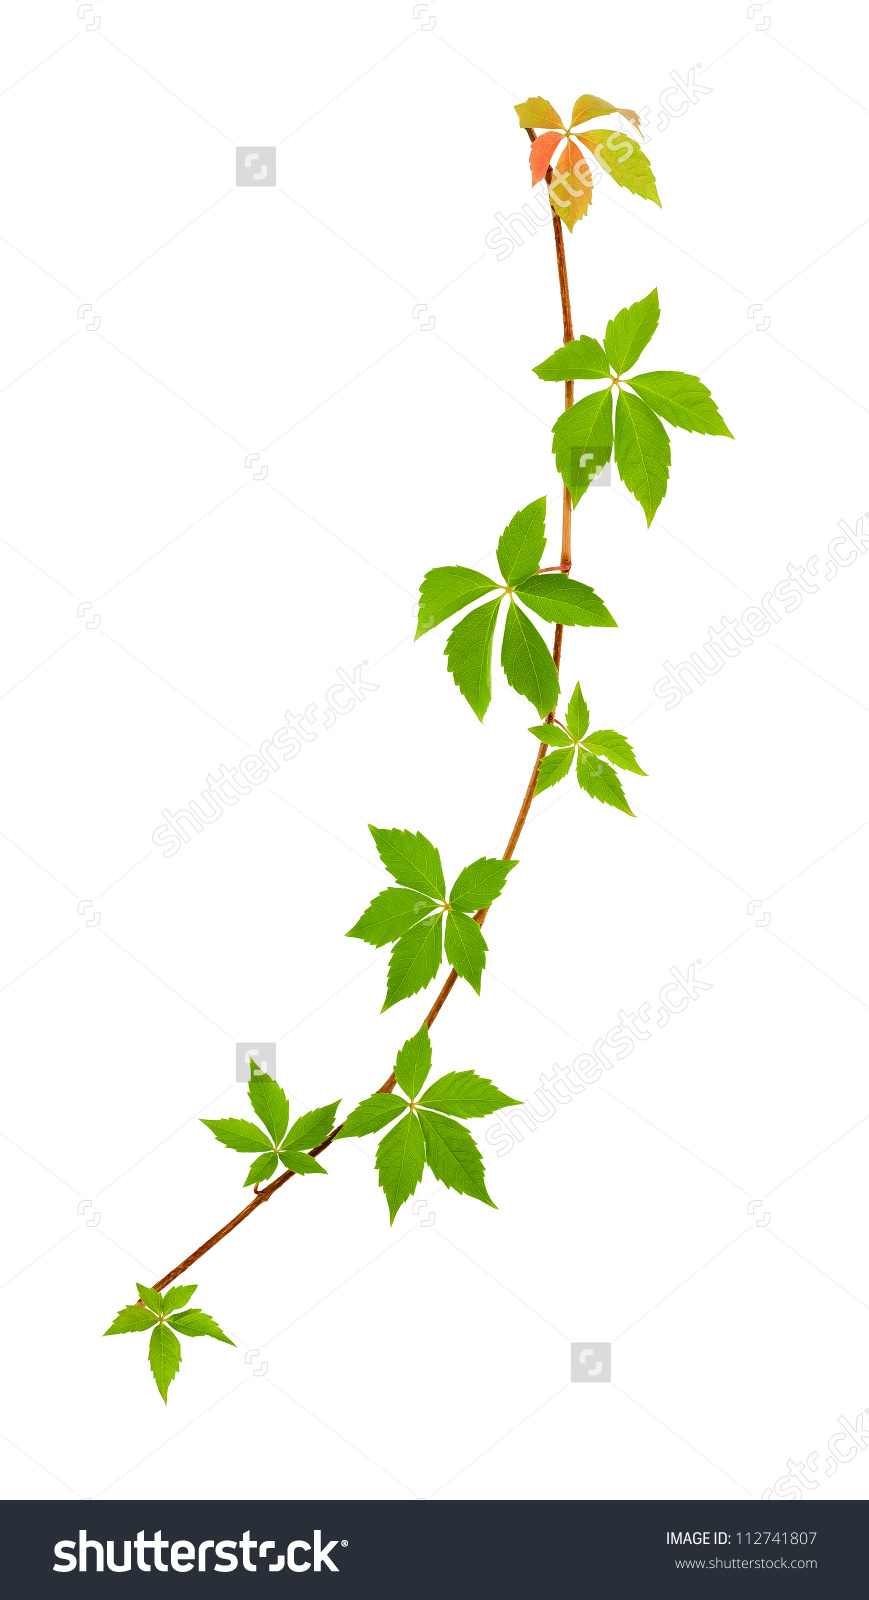 Climbing Vine Isolated On White Stock Photo 112741807.